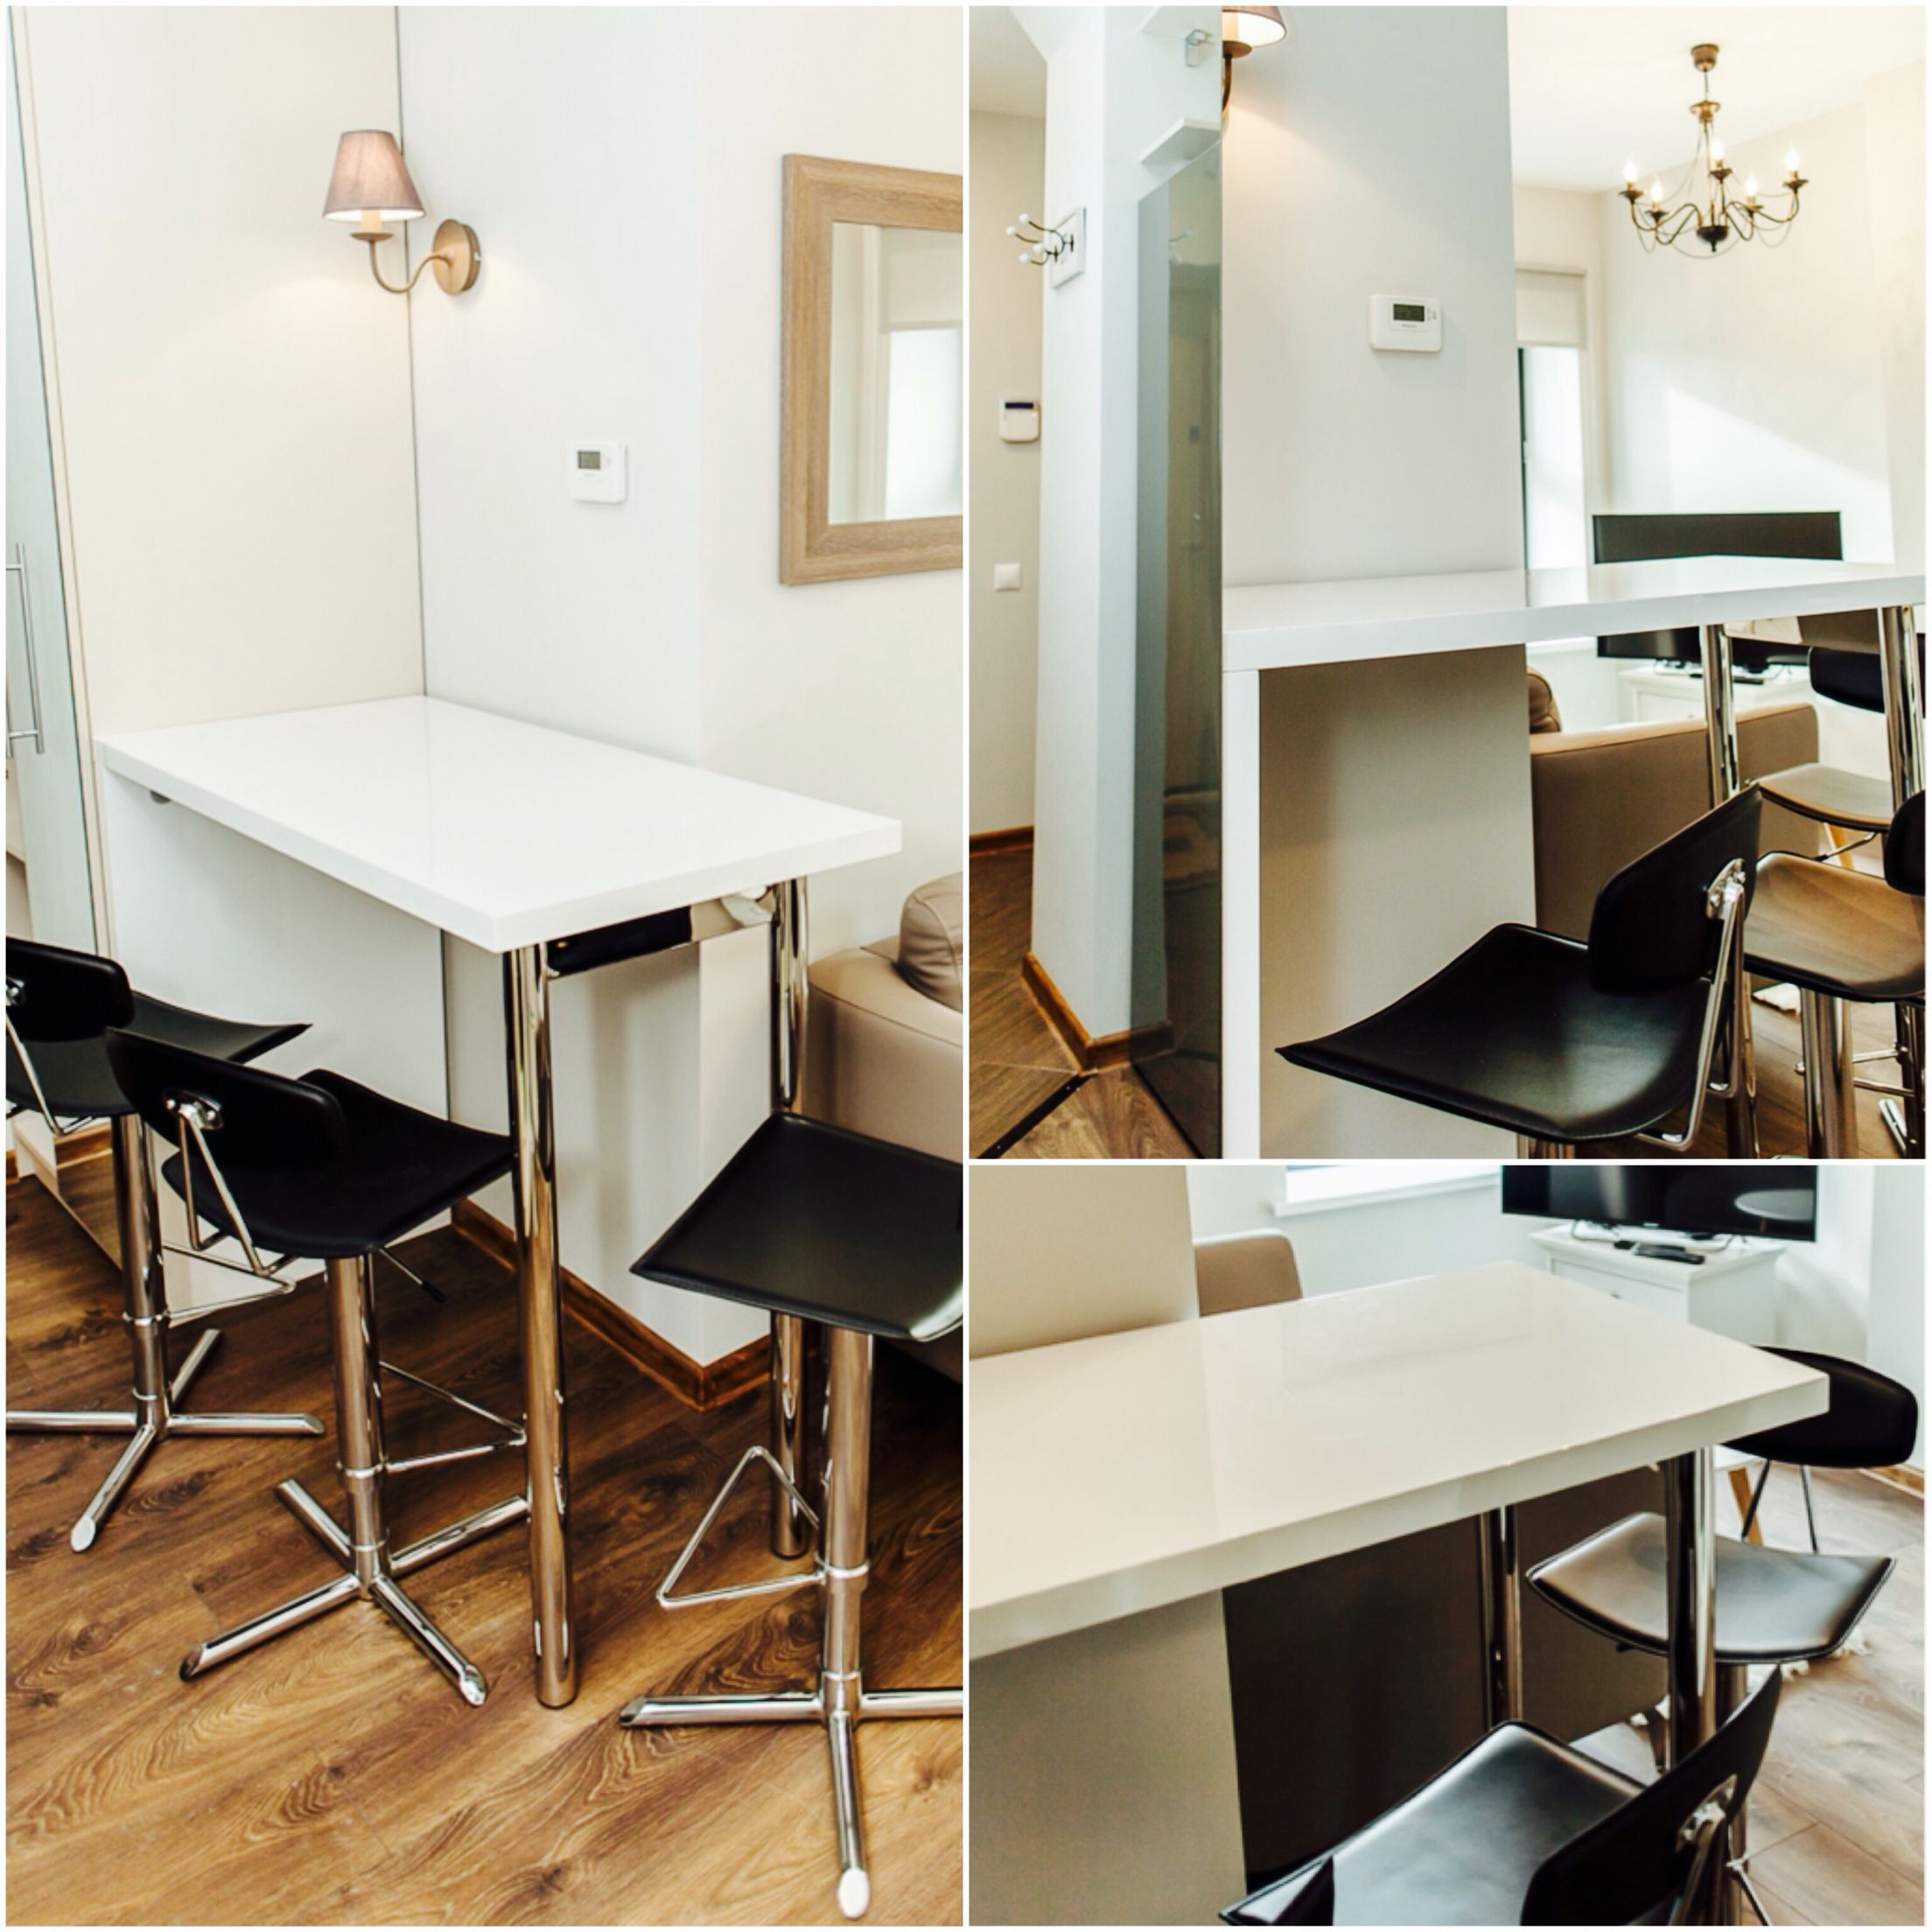 Furnitures Fashion Small Dining Room Furniture Design: Dining Room. Scandinavian Style. Bar Chairs. Small